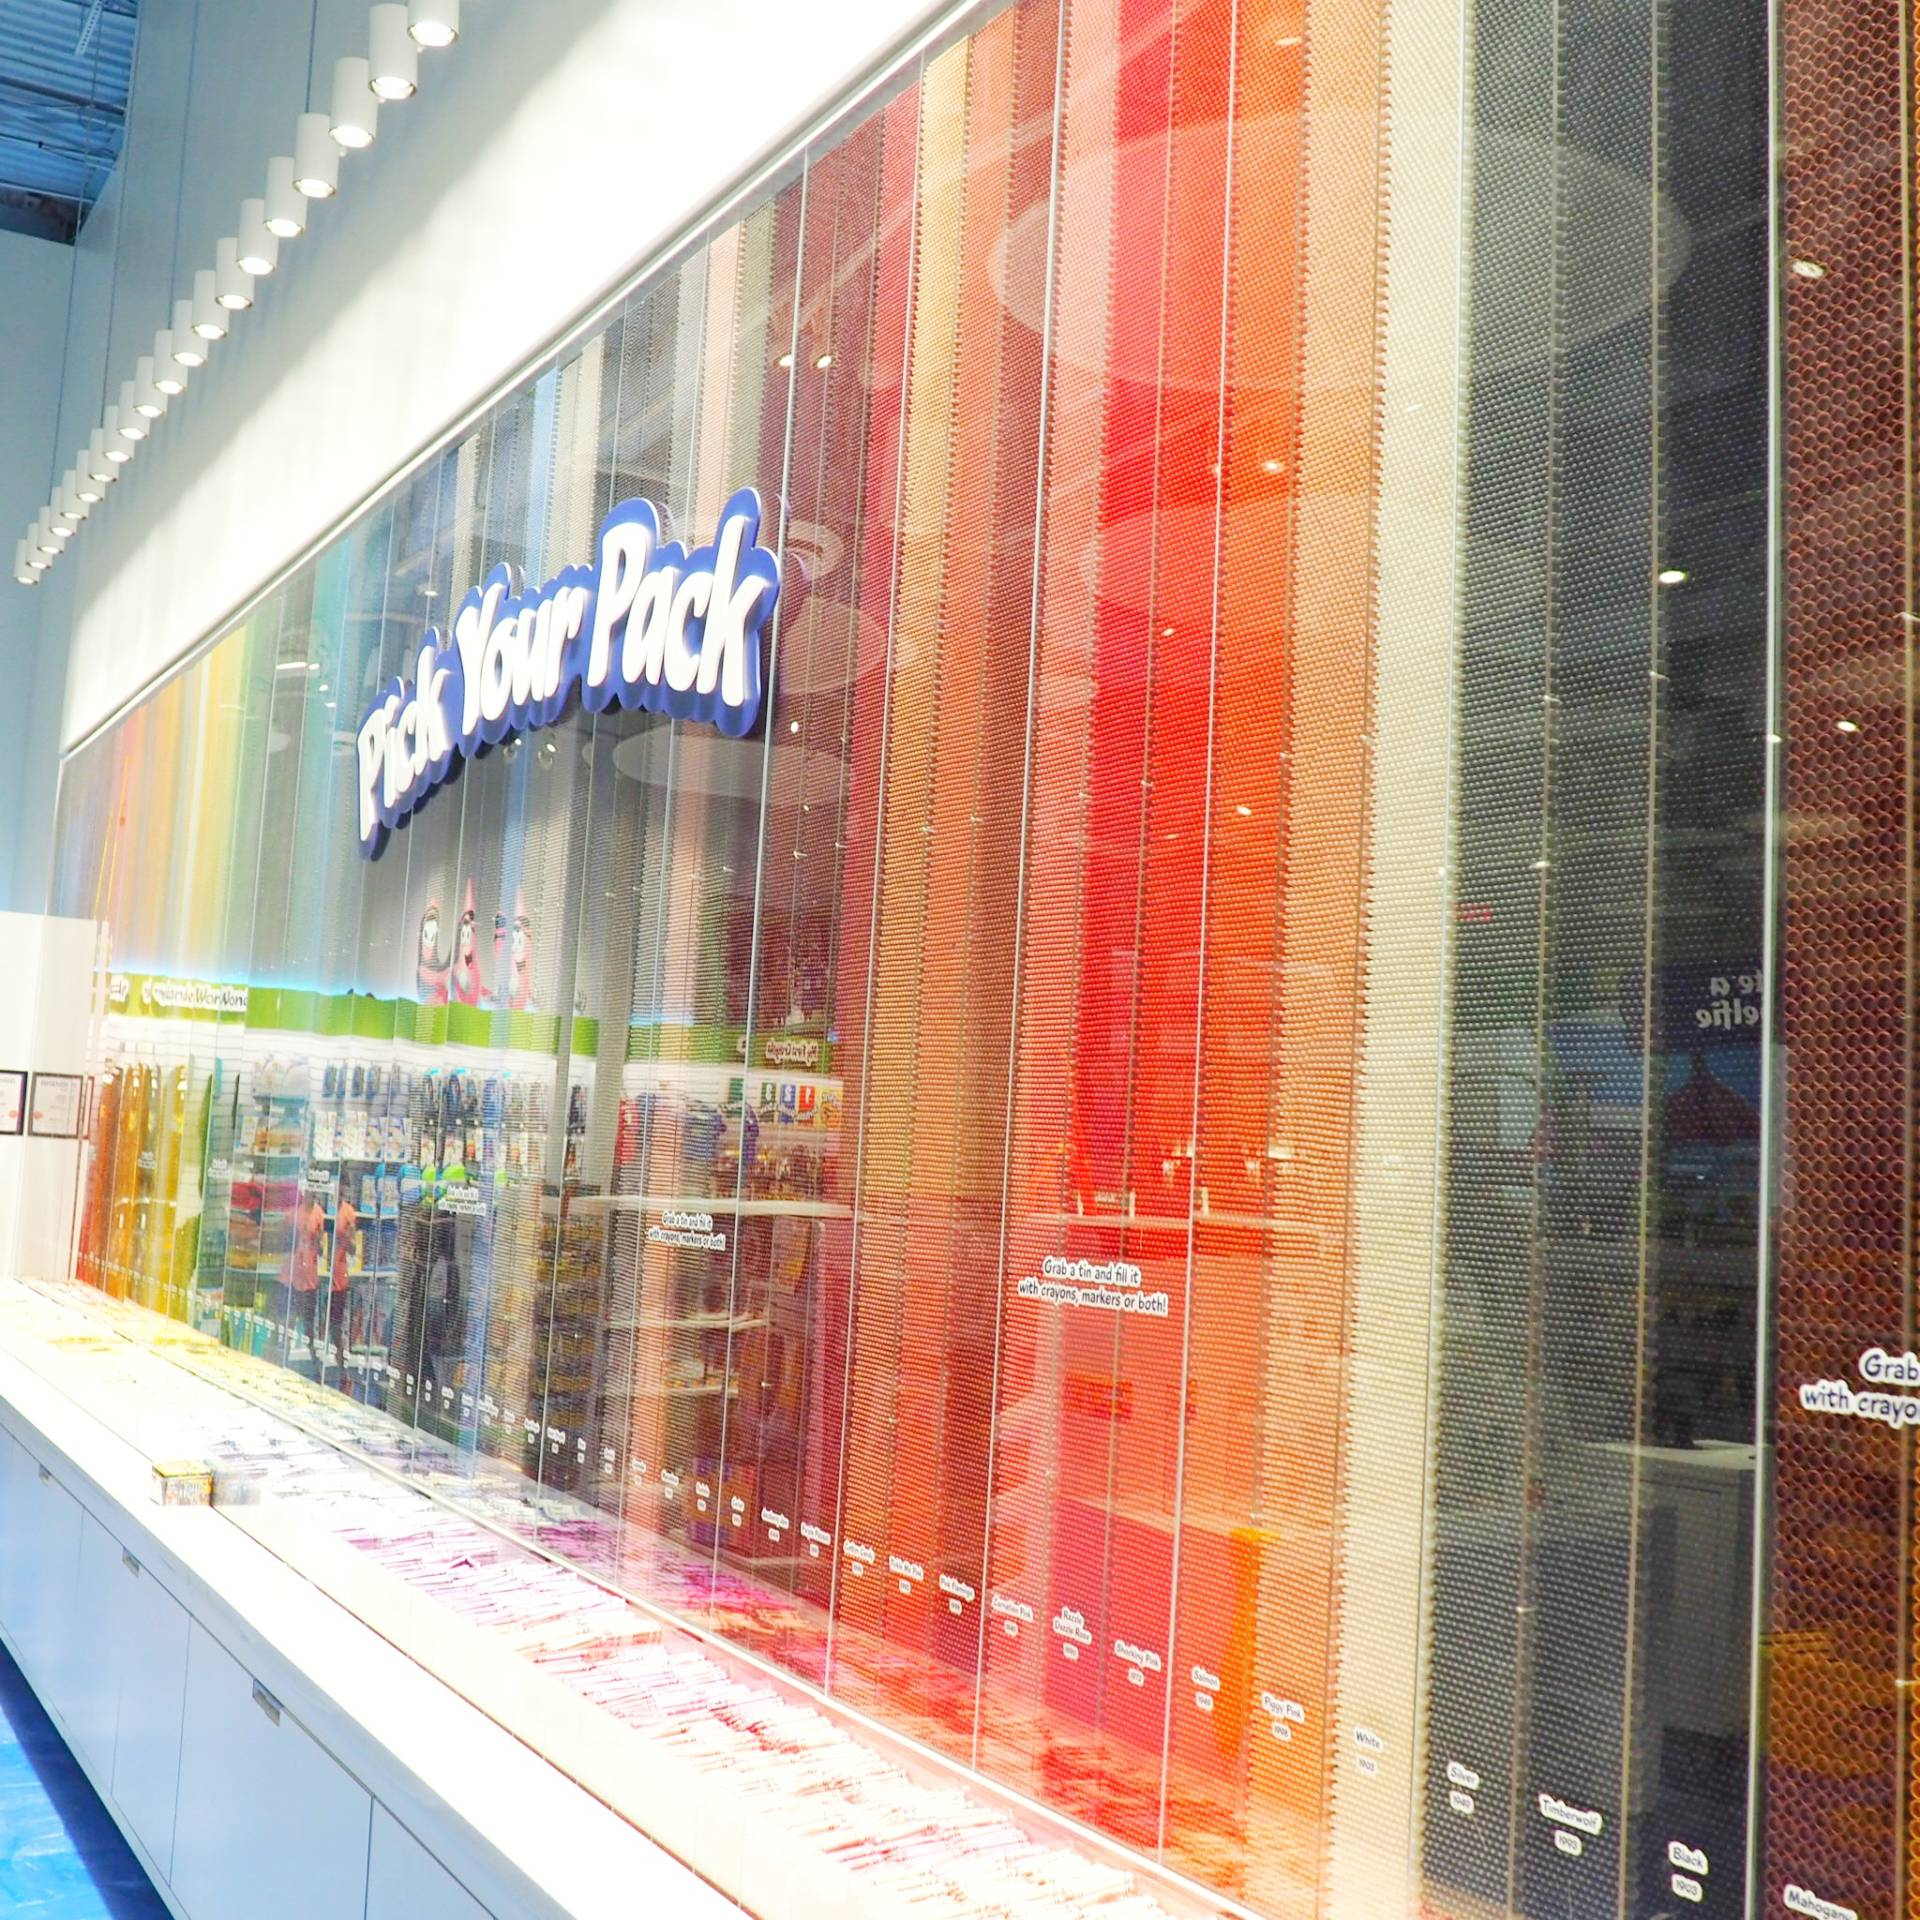 Crayola-Experience-Gift-Shop